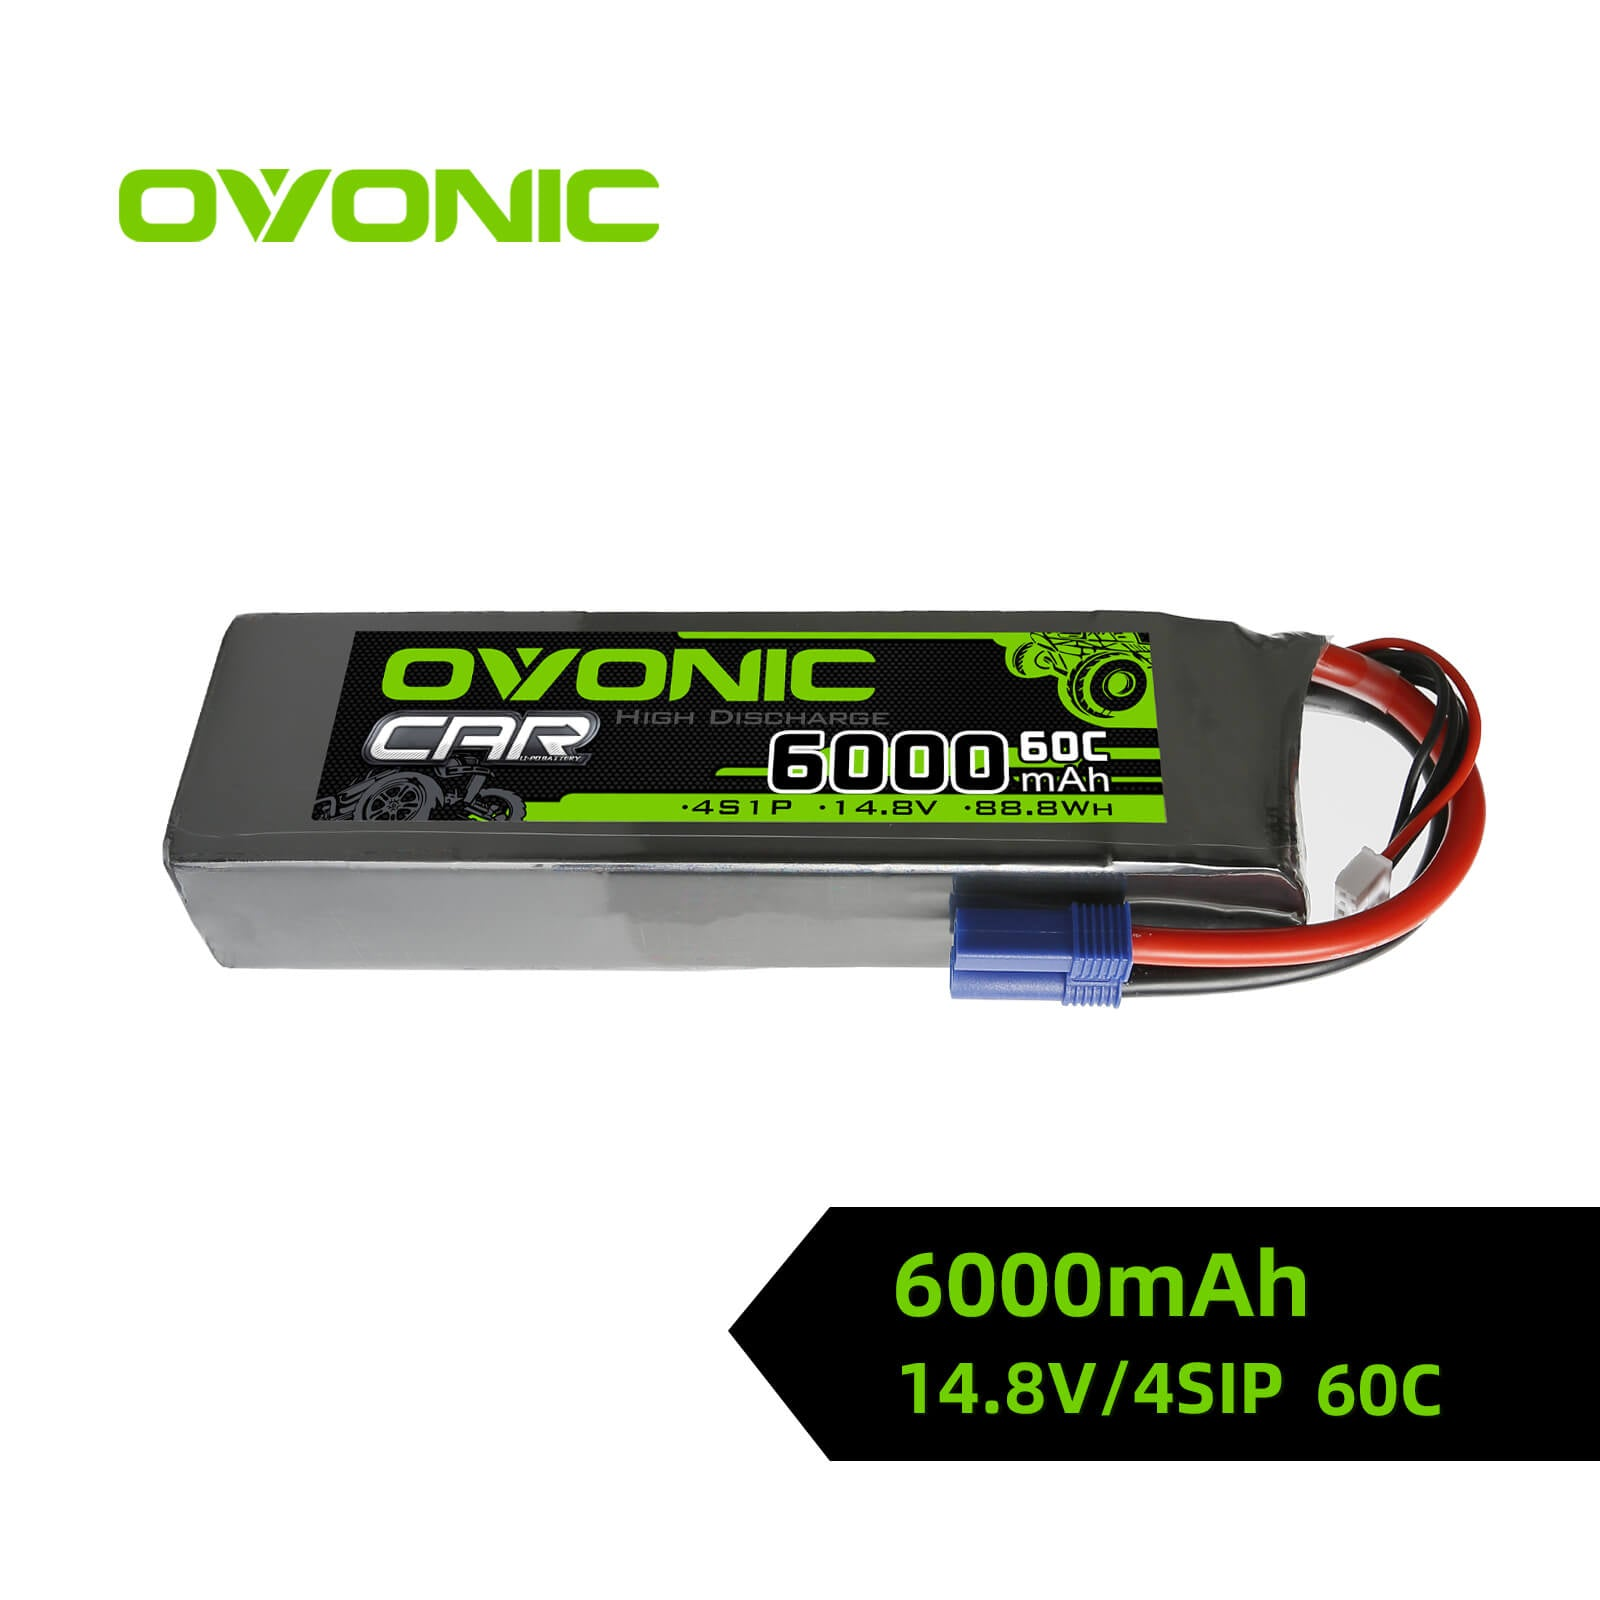 Ovonic 60C 14.8V 4S LiPo 6000mAh Battery Pack for 1/5 to 1/8 car- EC5 Plug